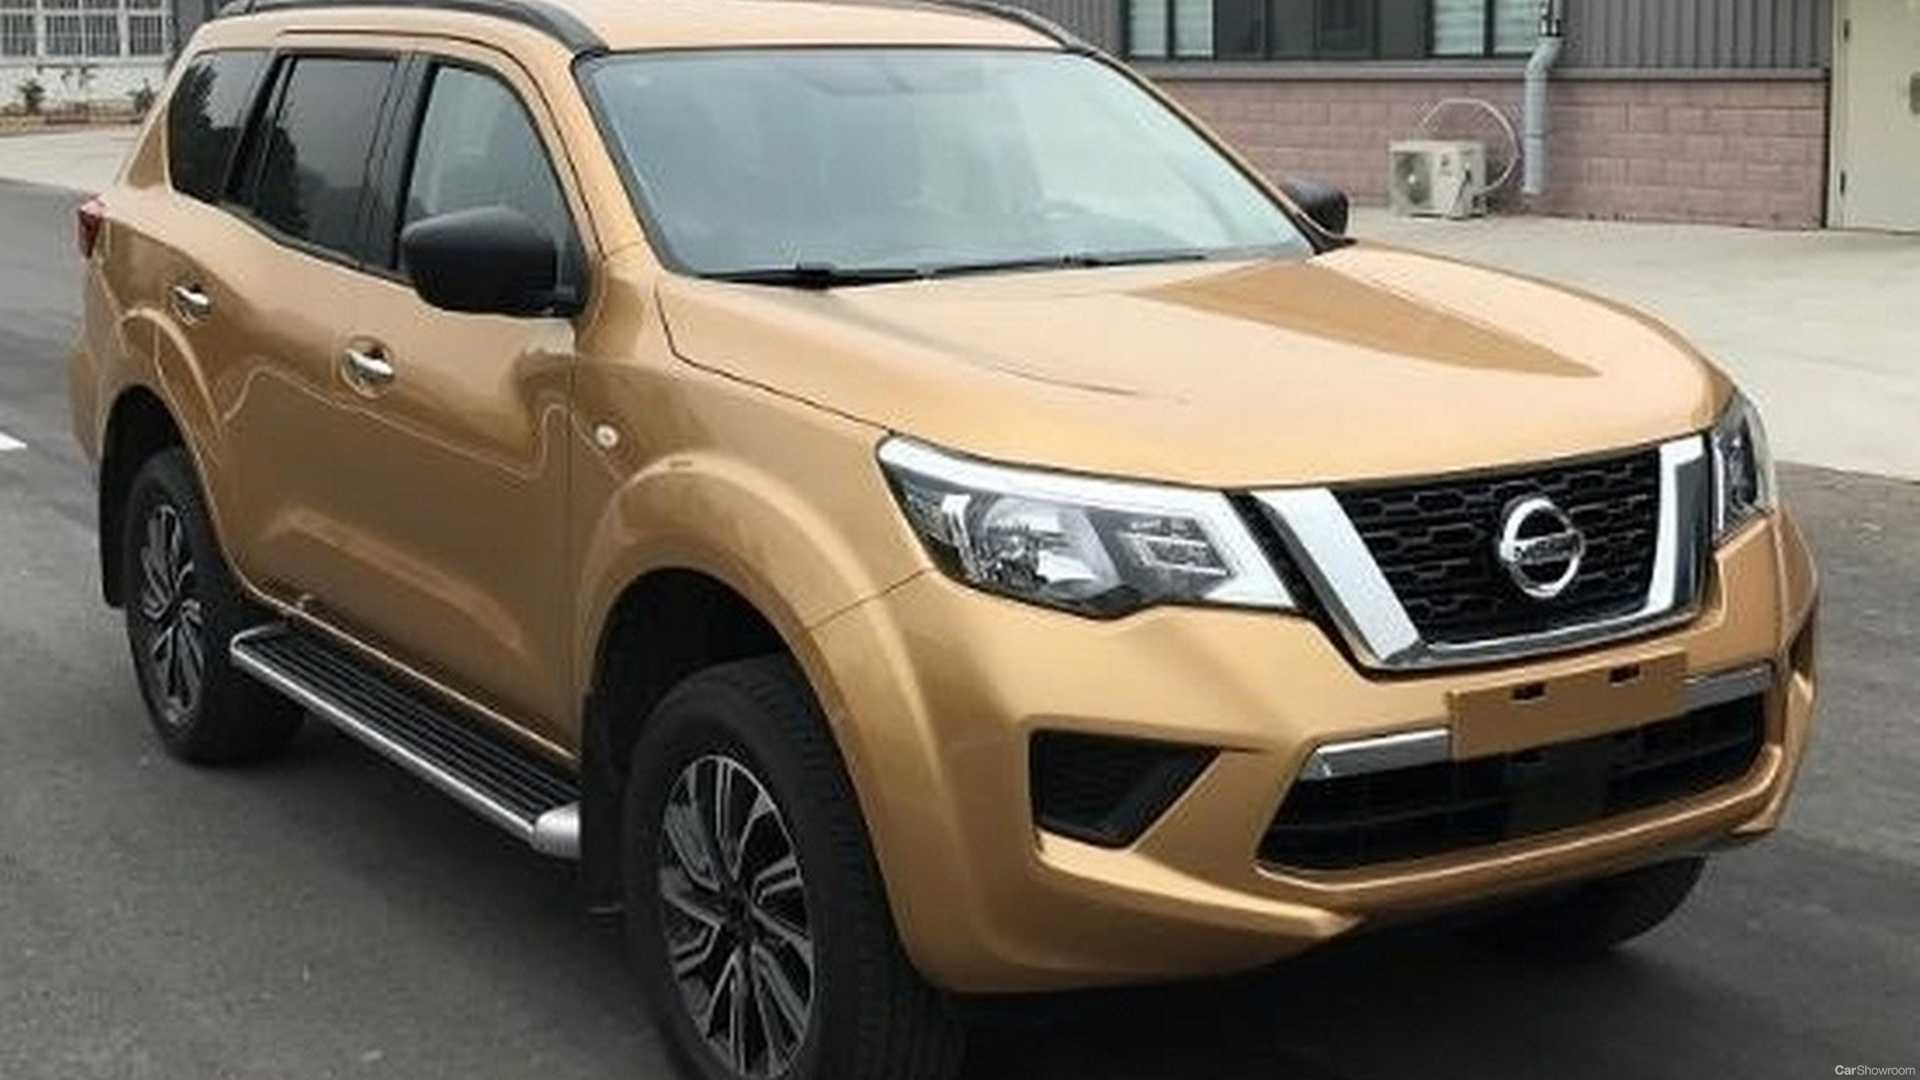 Pictures of the upcoming Nissan Terra 4x4 were leaked by some websites